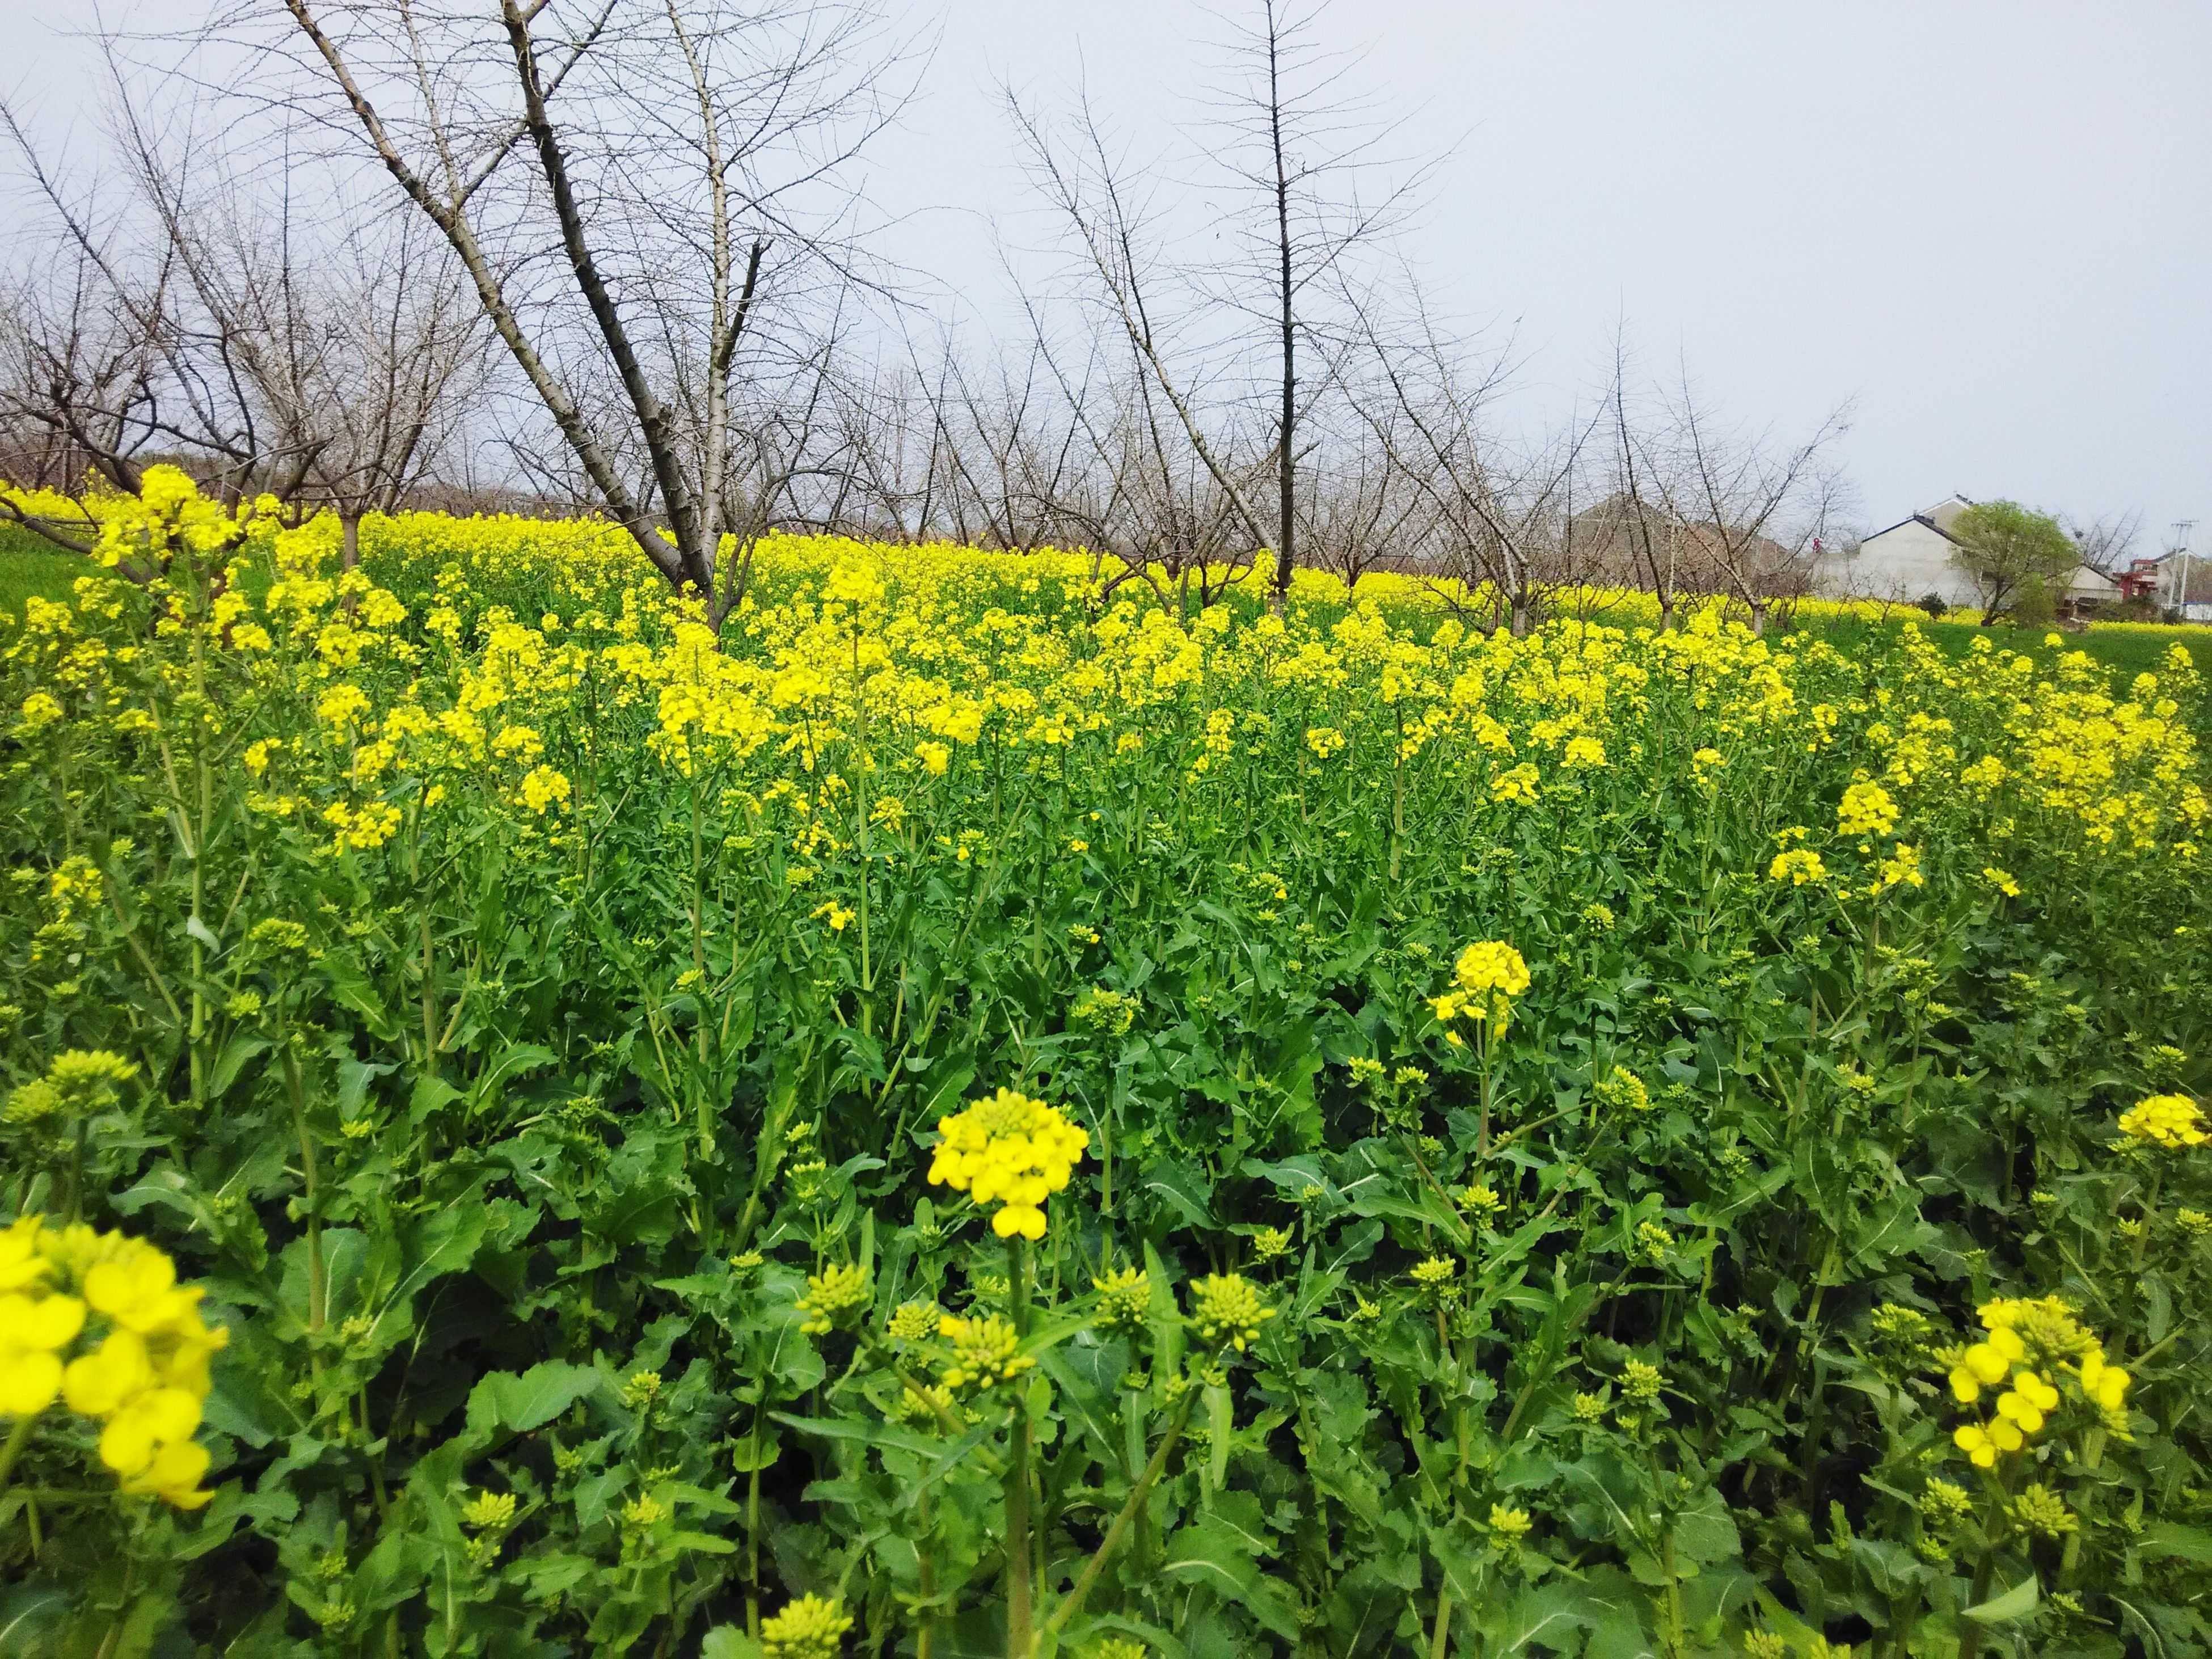 flower, yellow, freshness, growth, beauty in nature, fragility, field, nature, plant, blooming, blossom, in bloom, rural scene, petal, agriculture, flower head, tranquility, springtime, abundance, tranquil scene